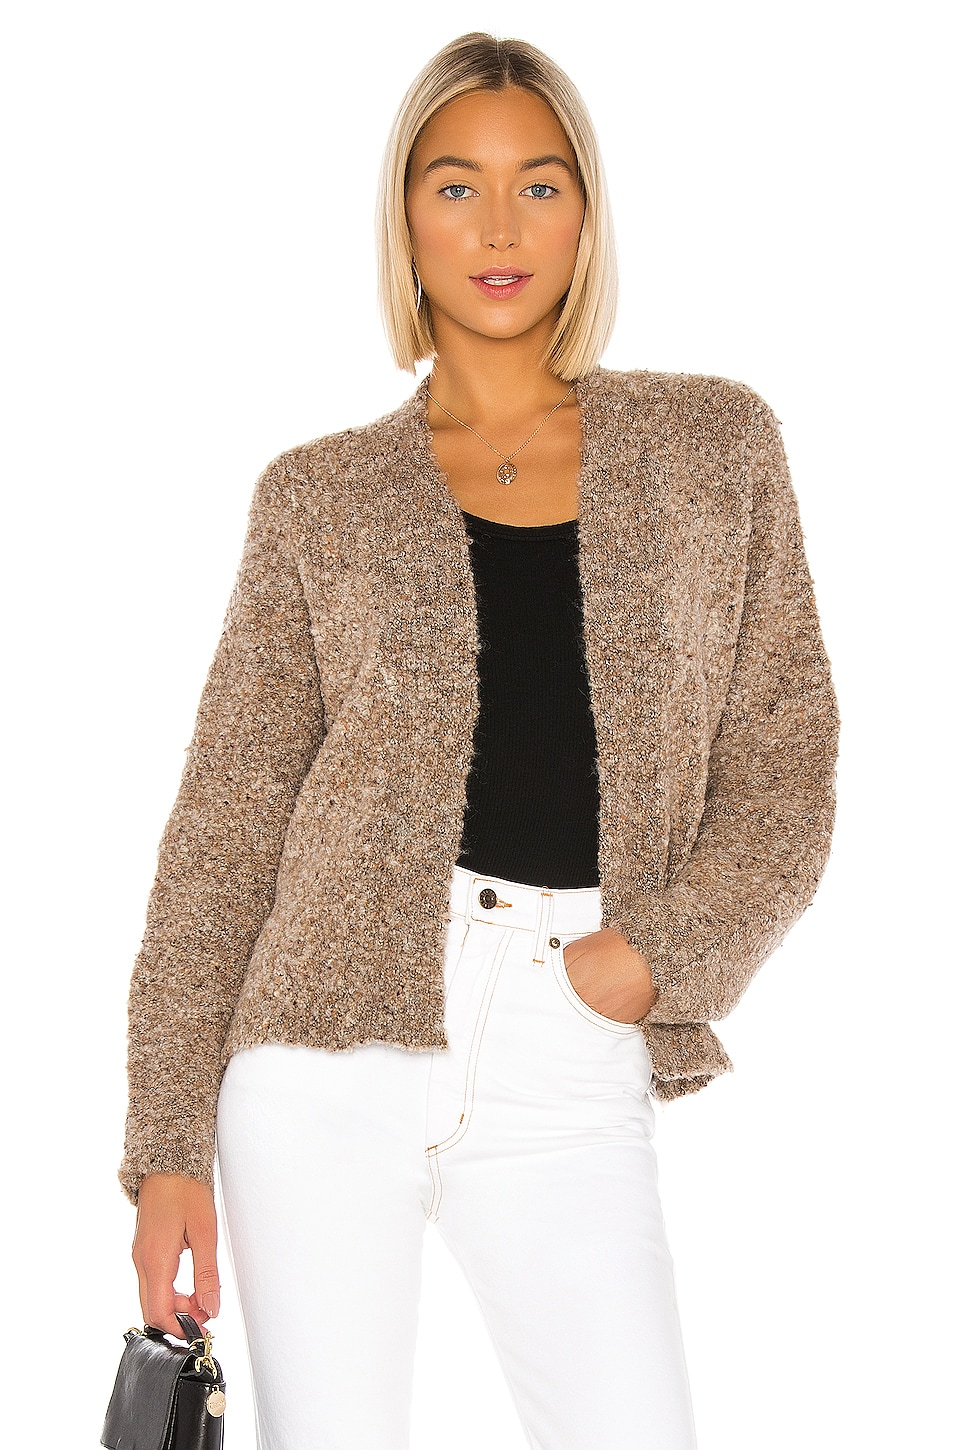 BB Dakota Comin' In Cozy Cardigan in Light Camel